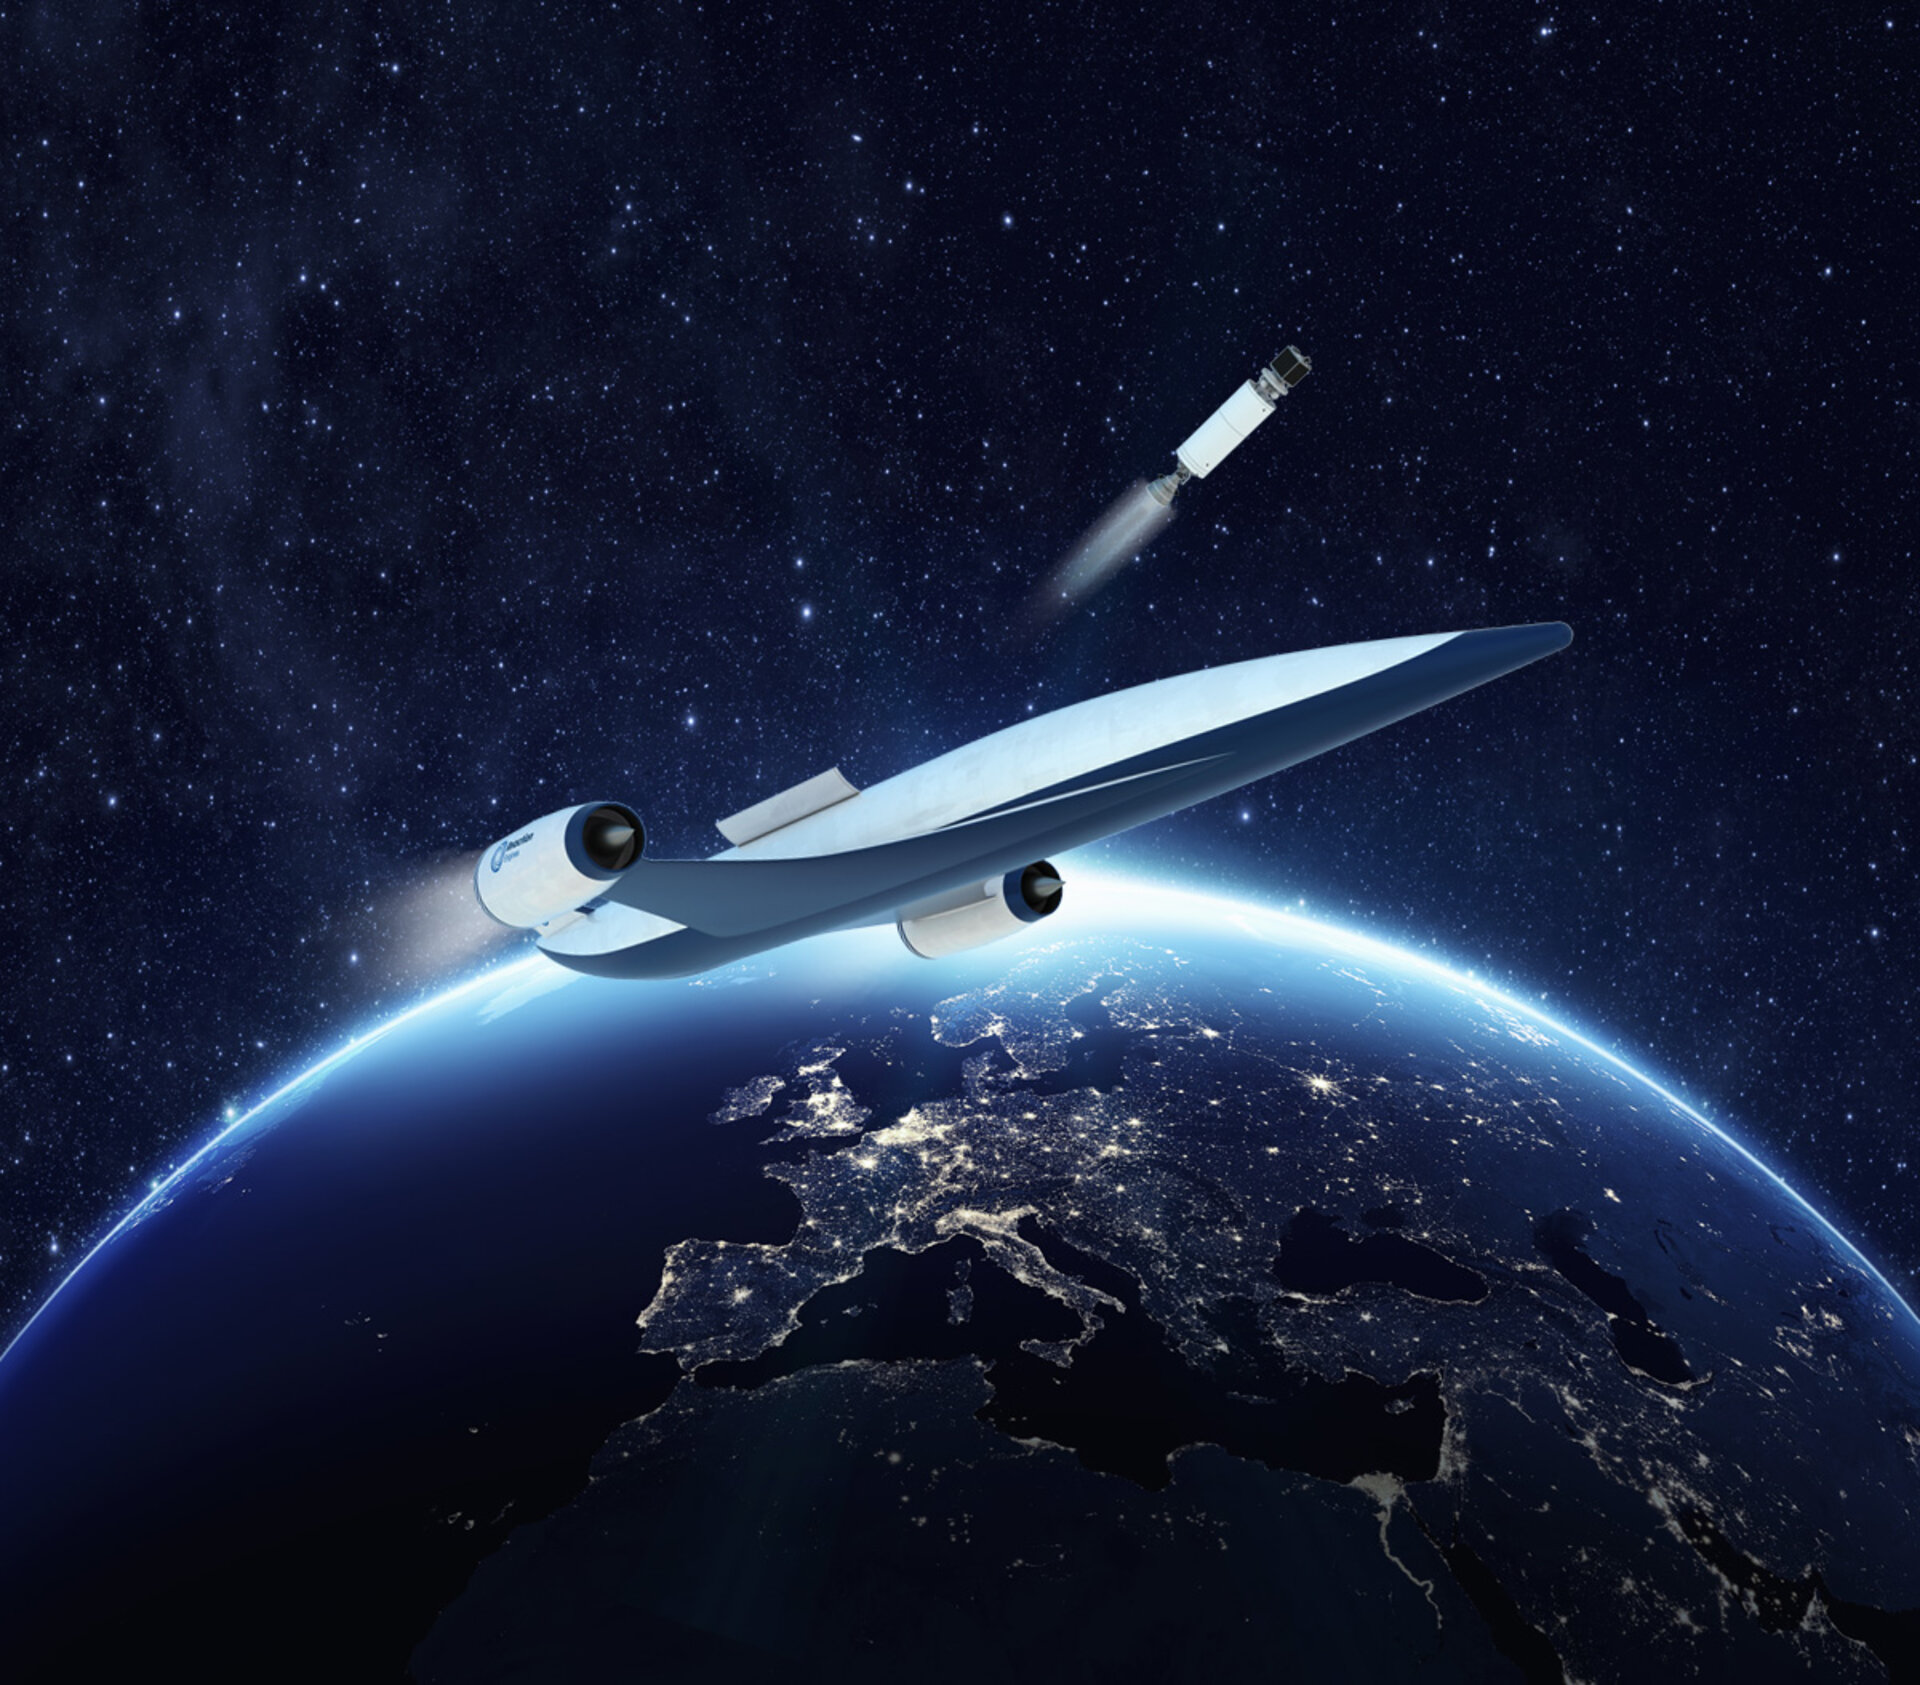 SABRE-powered_launch_system_beyond_2030_